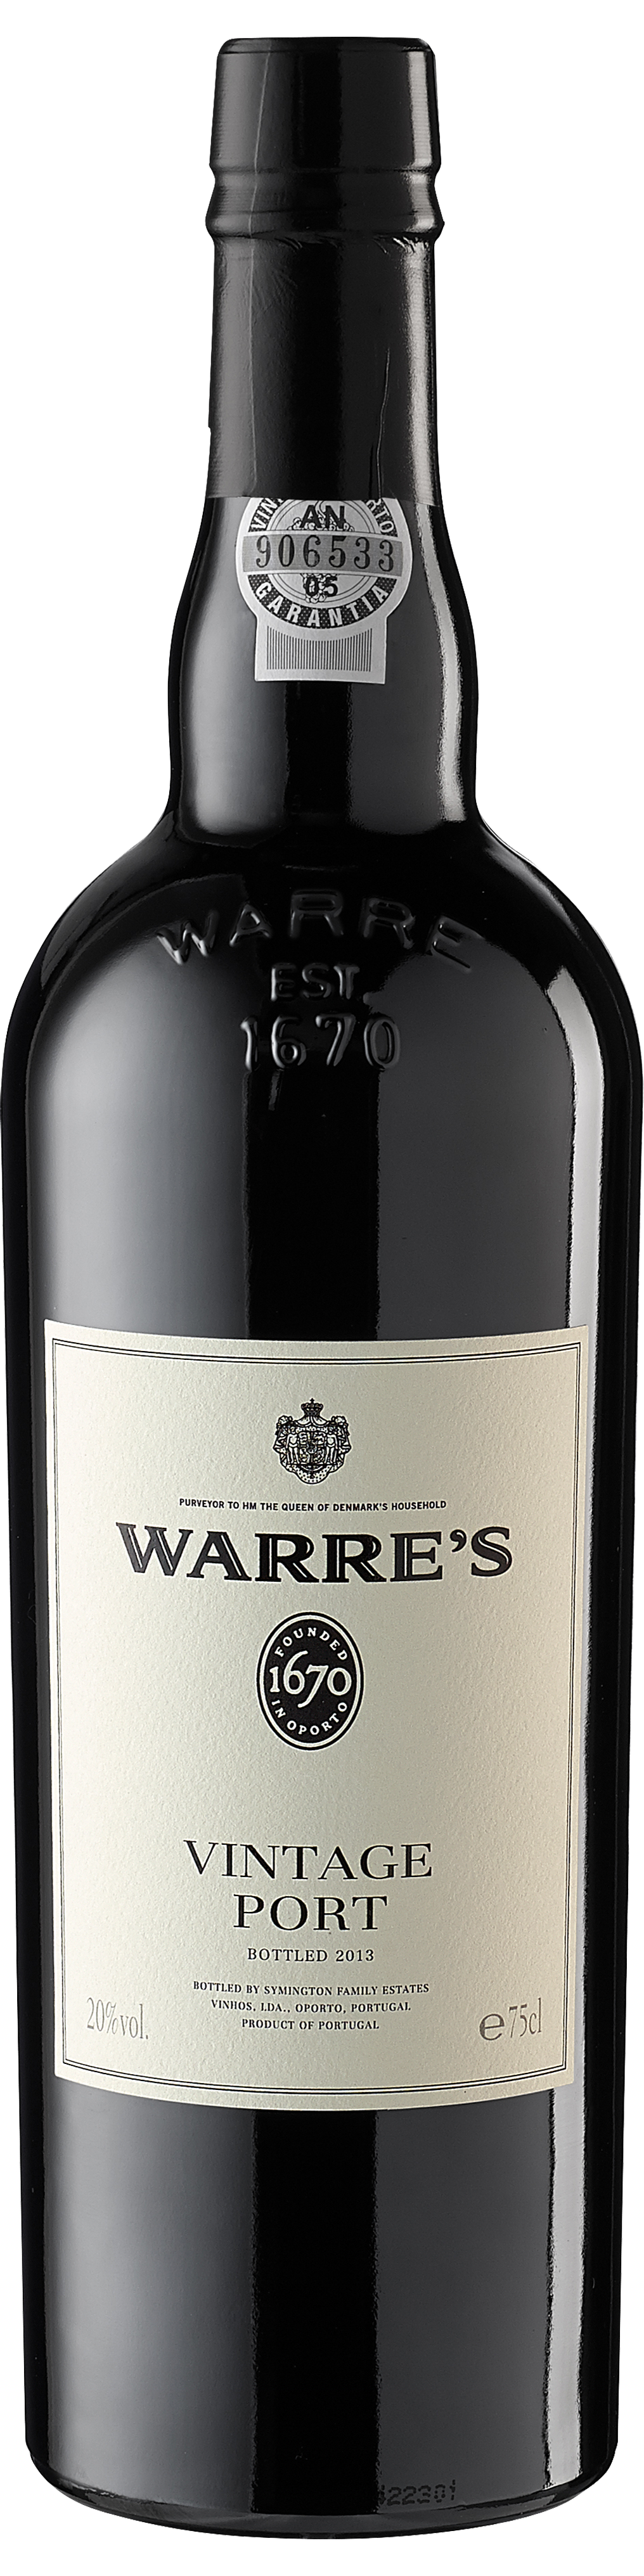 Image of product Warre's Vintage Port